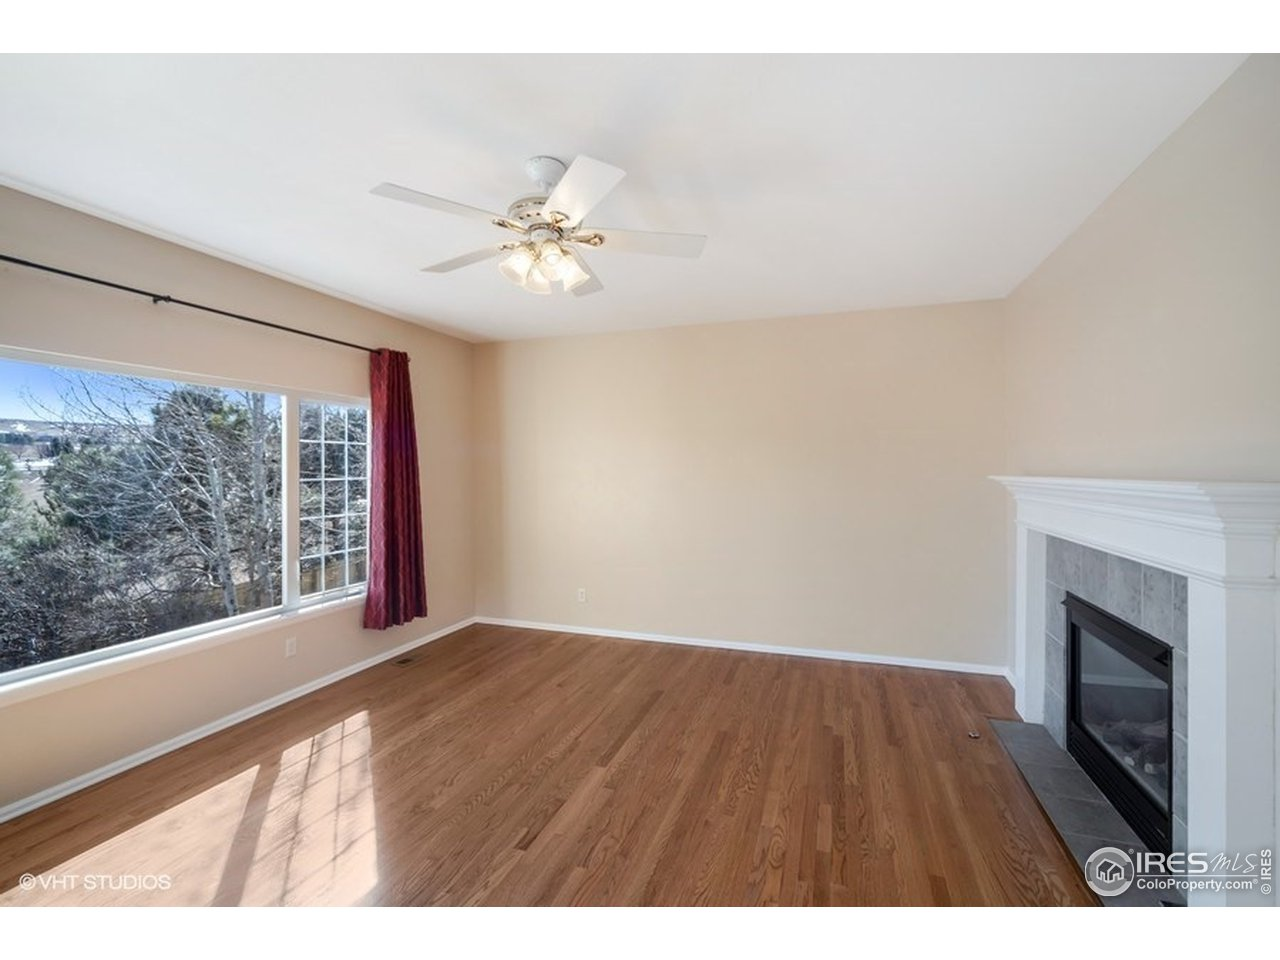 Picture window and gas fireplace